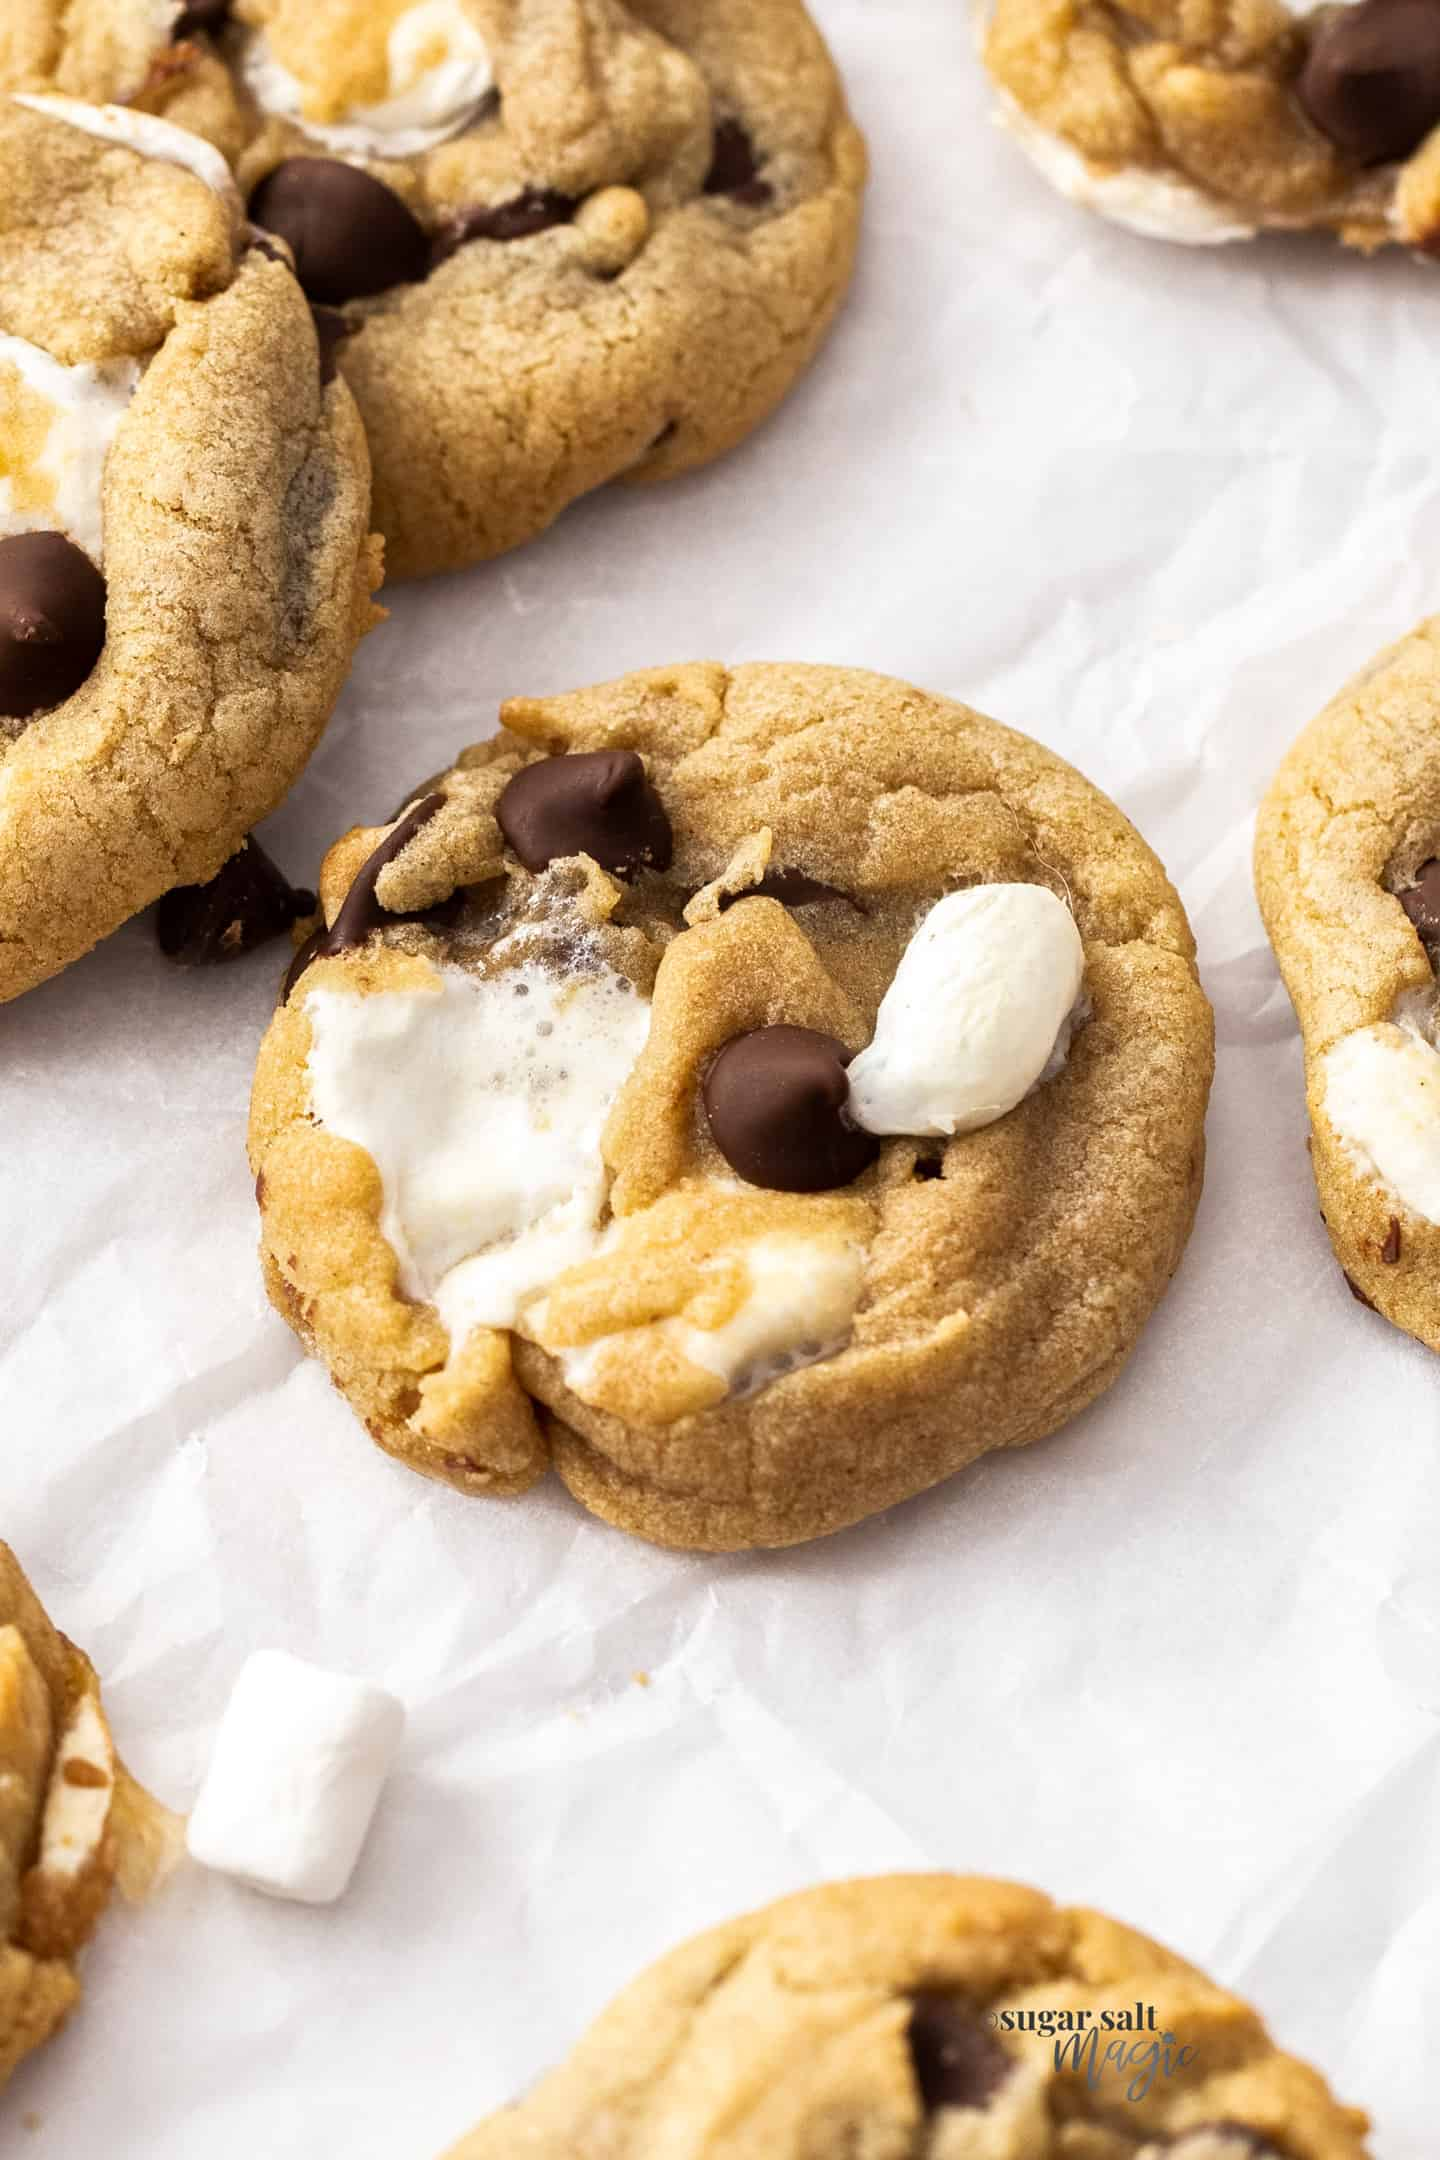 Closeup of a single marshmallow chocolate chip cookie.